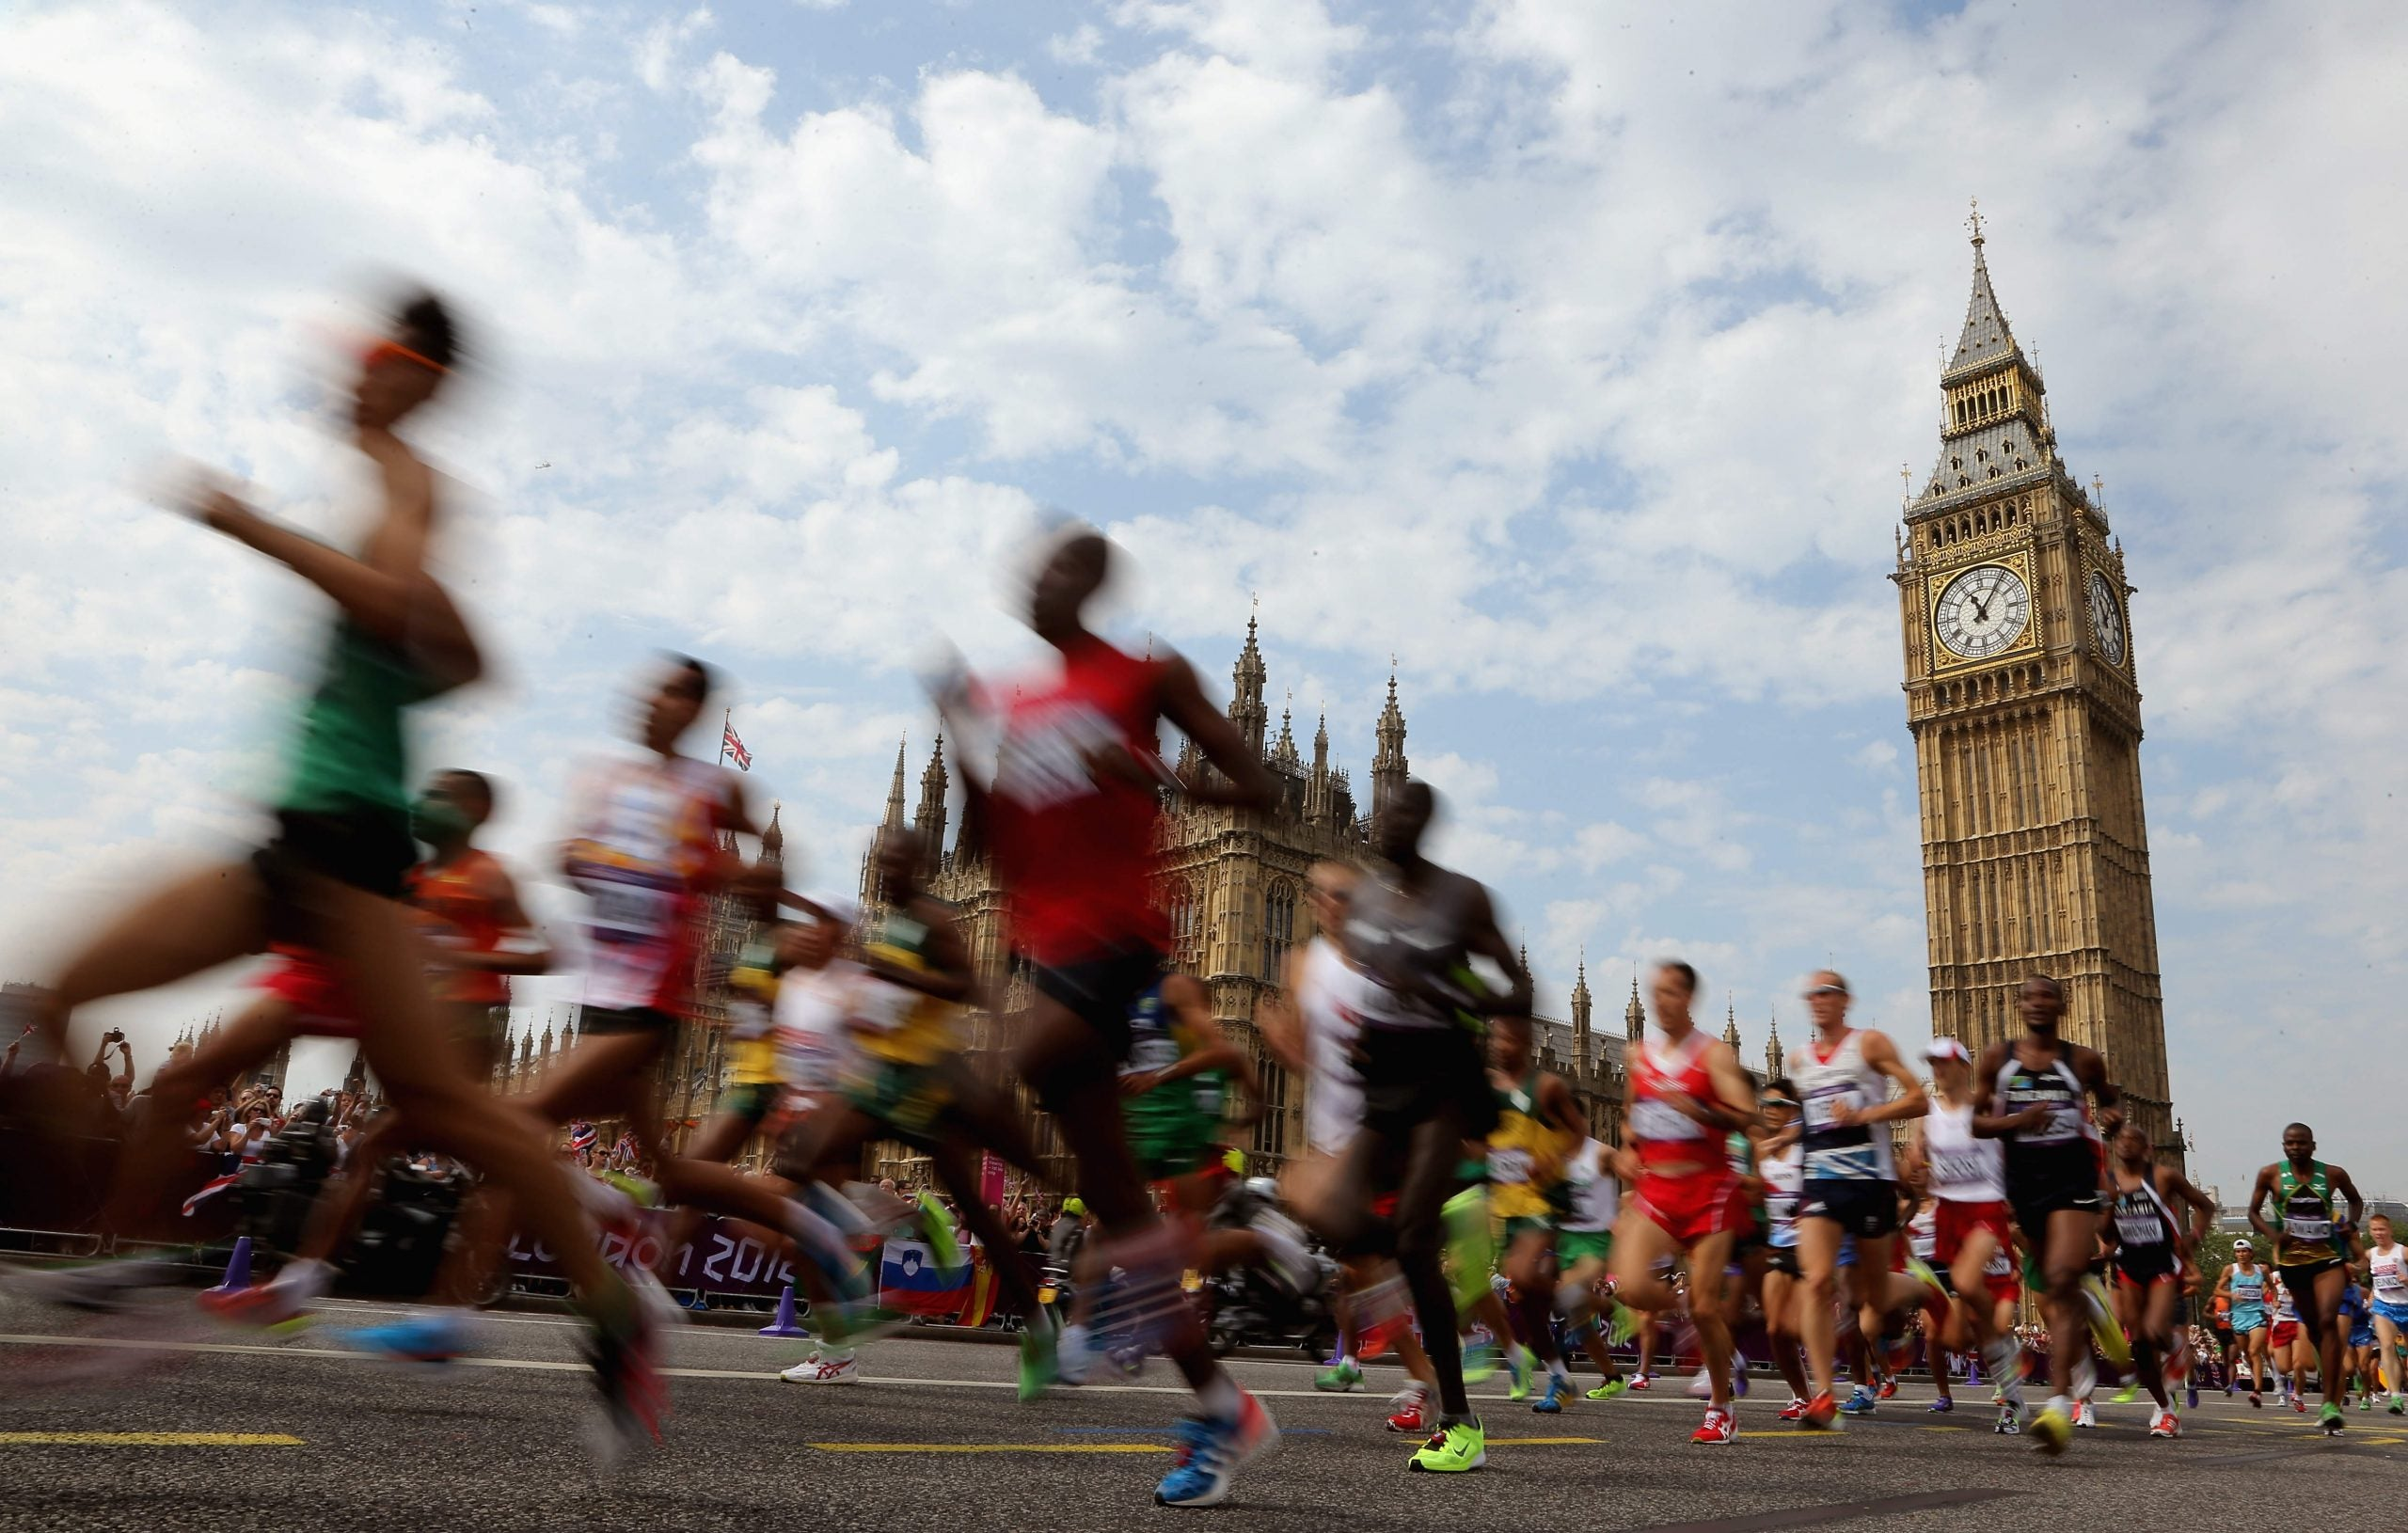 Fitter, happier, more productive: how to make London a sporting city for all